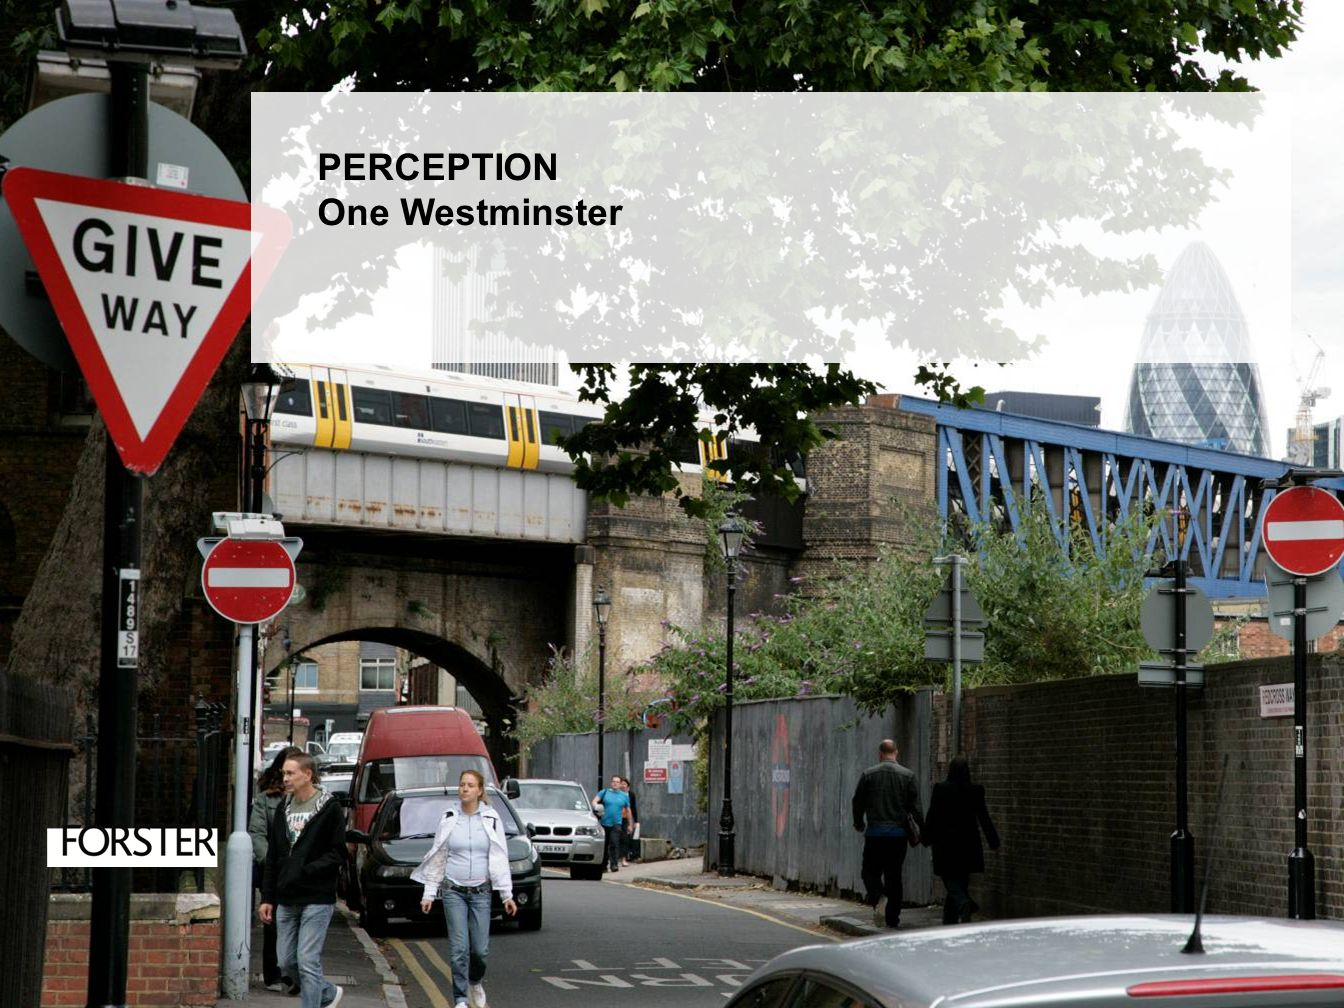 PERCEPTION One Westminster